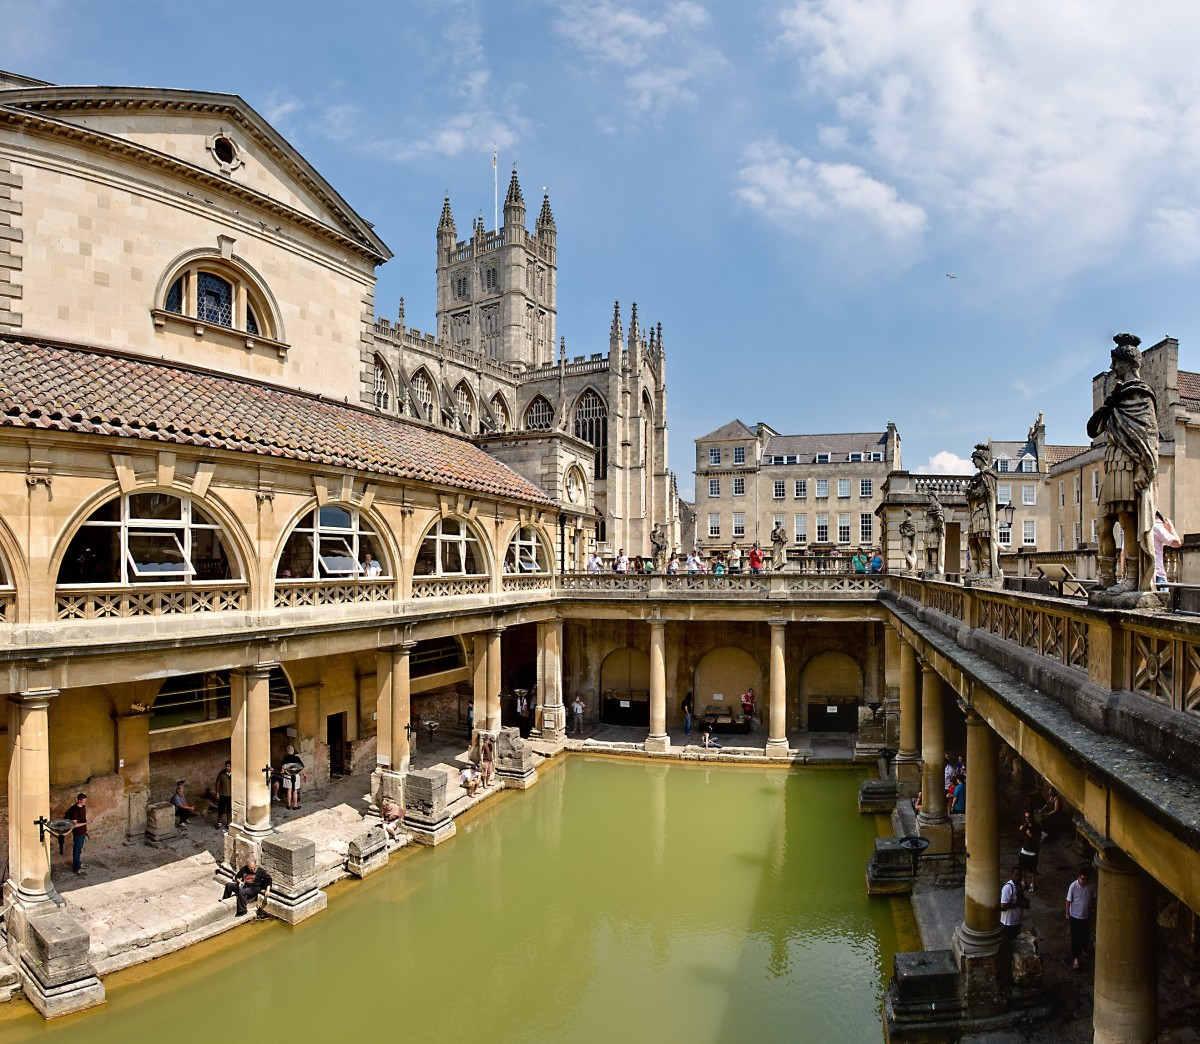 The Roman Baths in Somerset: A Hot Spring and a Goddess